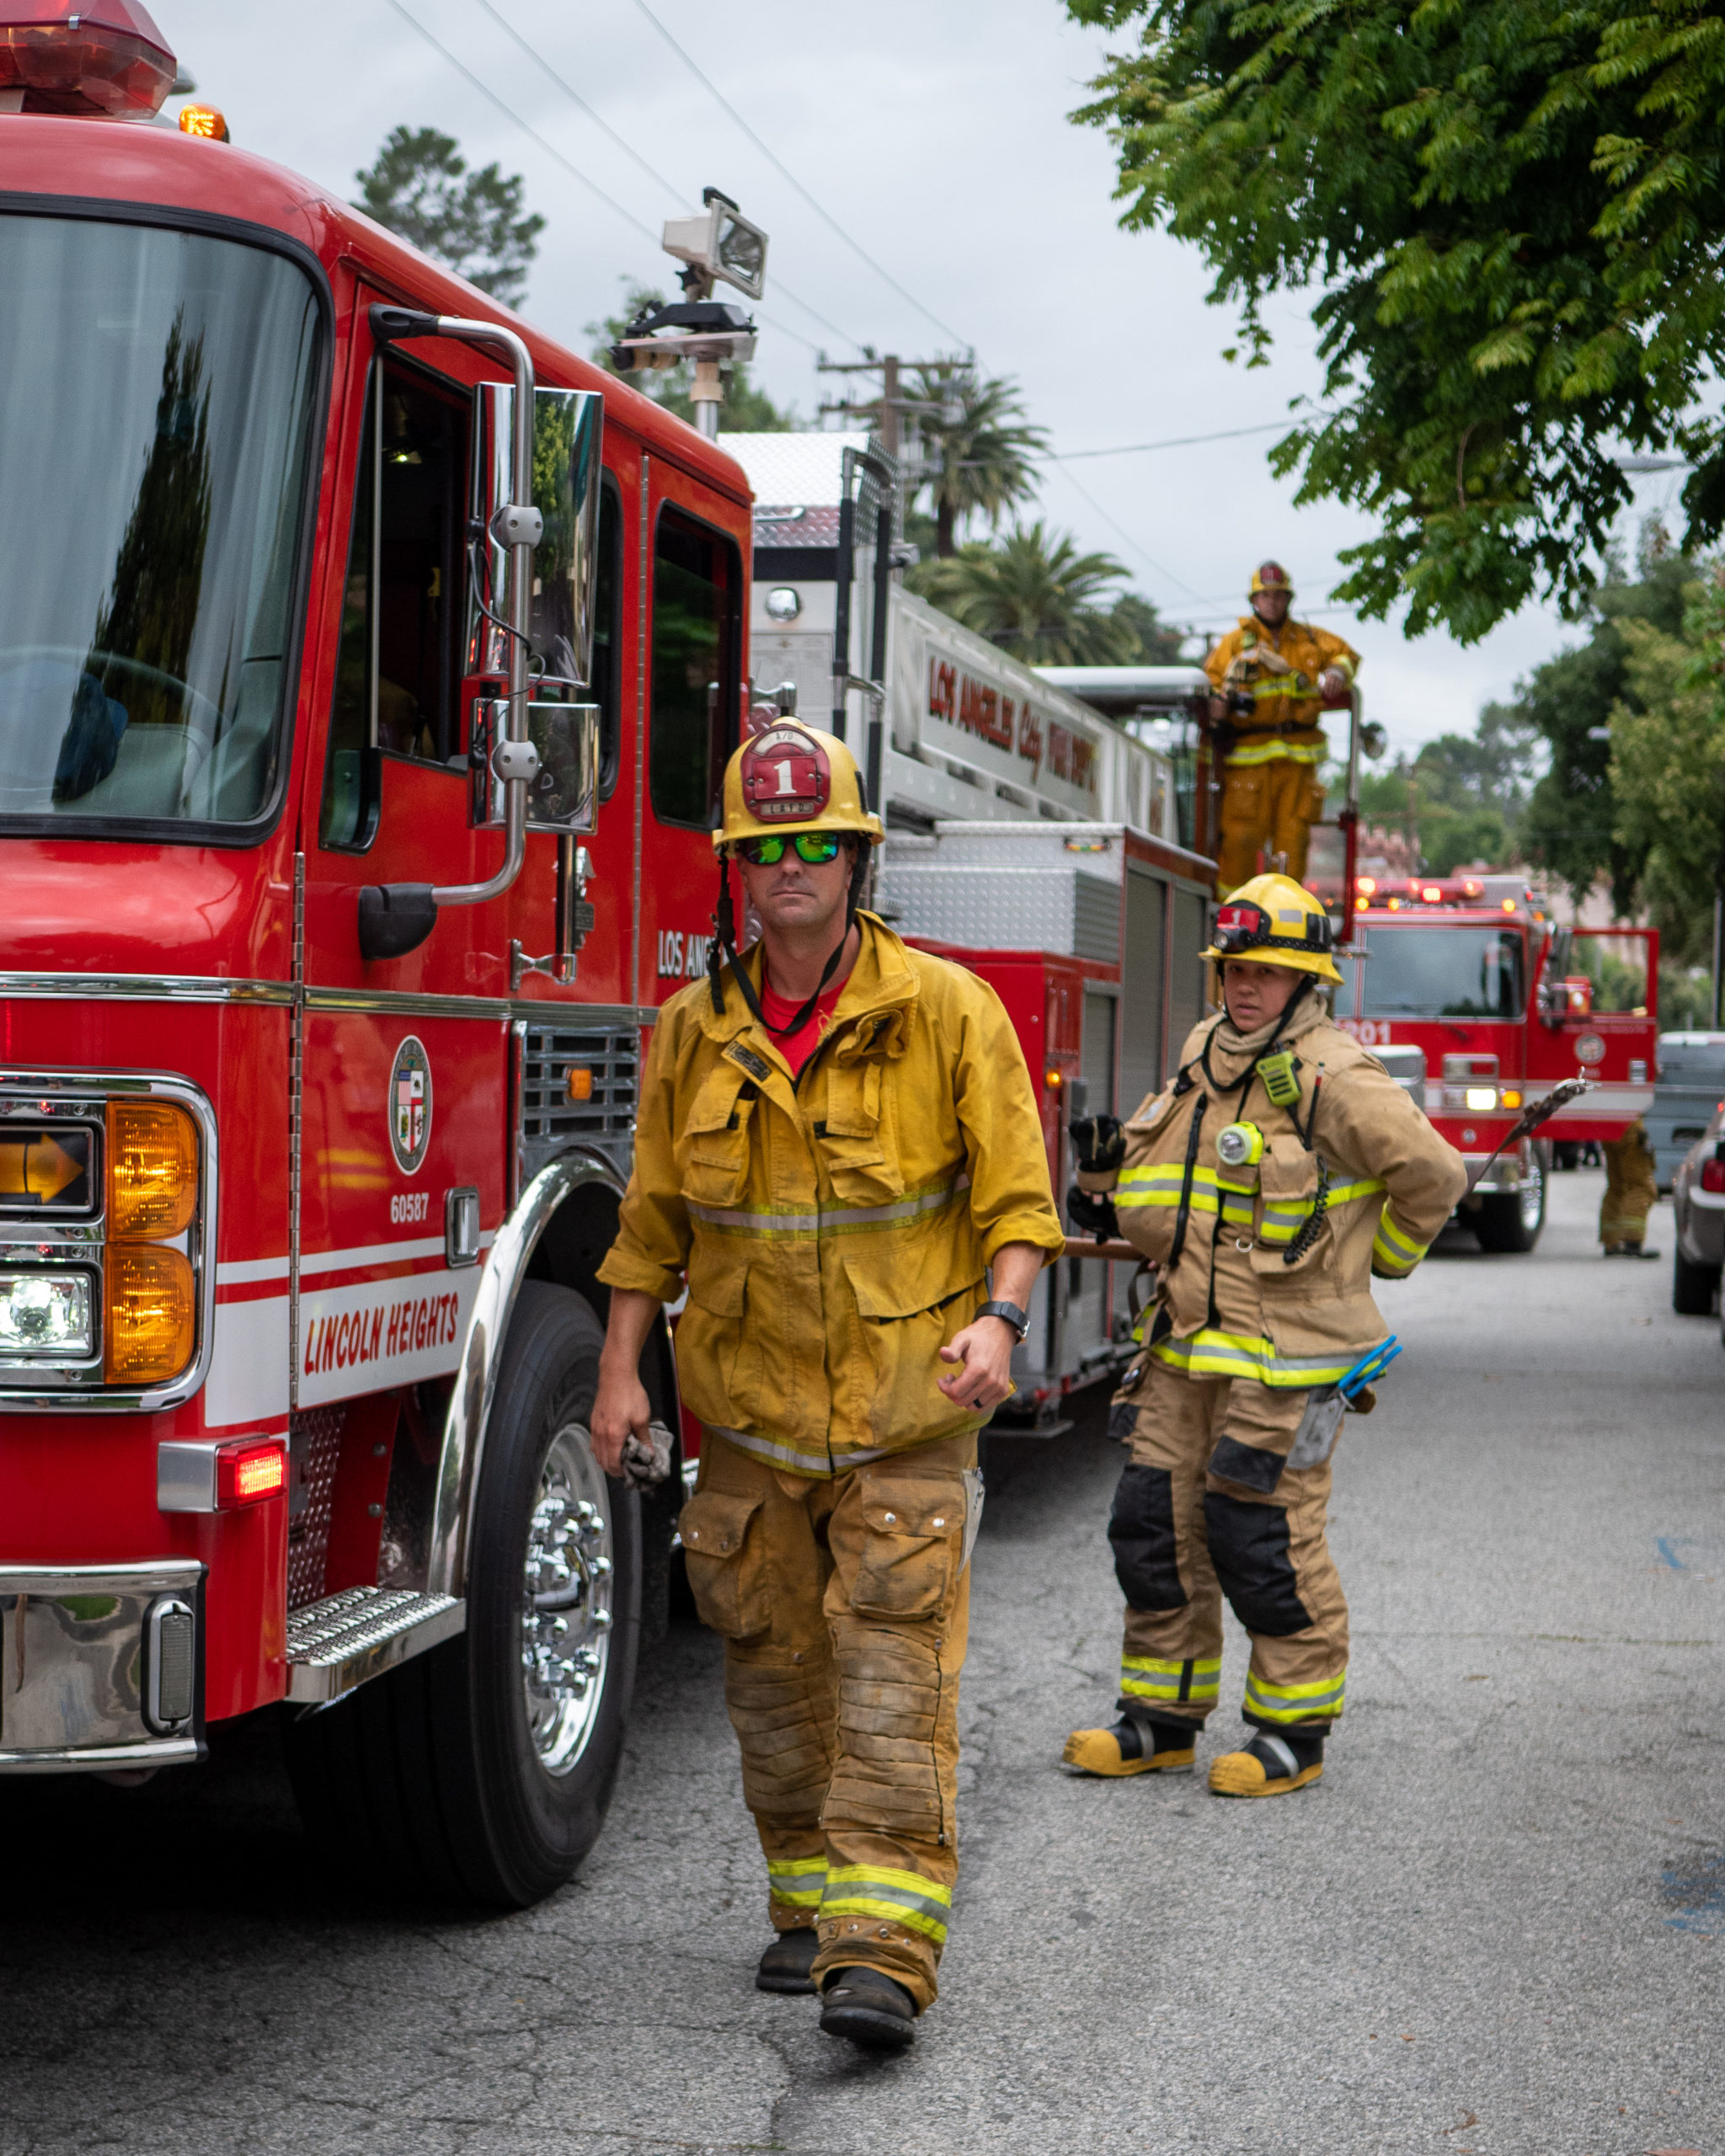 south-pasadena-news-06-05-2020-spfd-house-fire-monterey-road-los-angeles-07